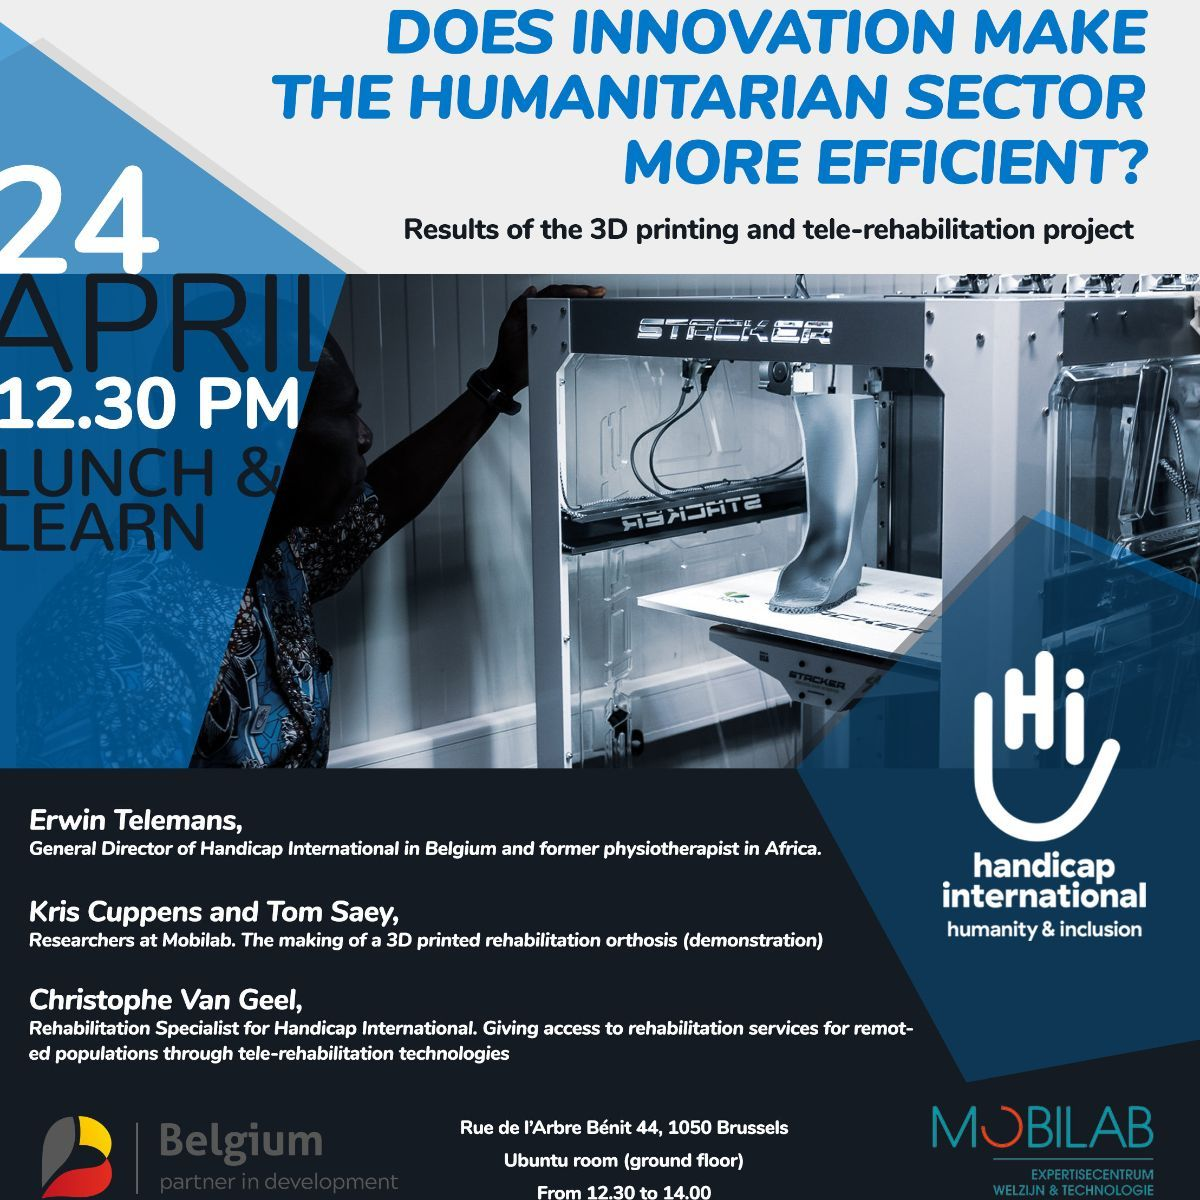 Invitation for the Lunch & Learn on innovation in the humanitarian sector